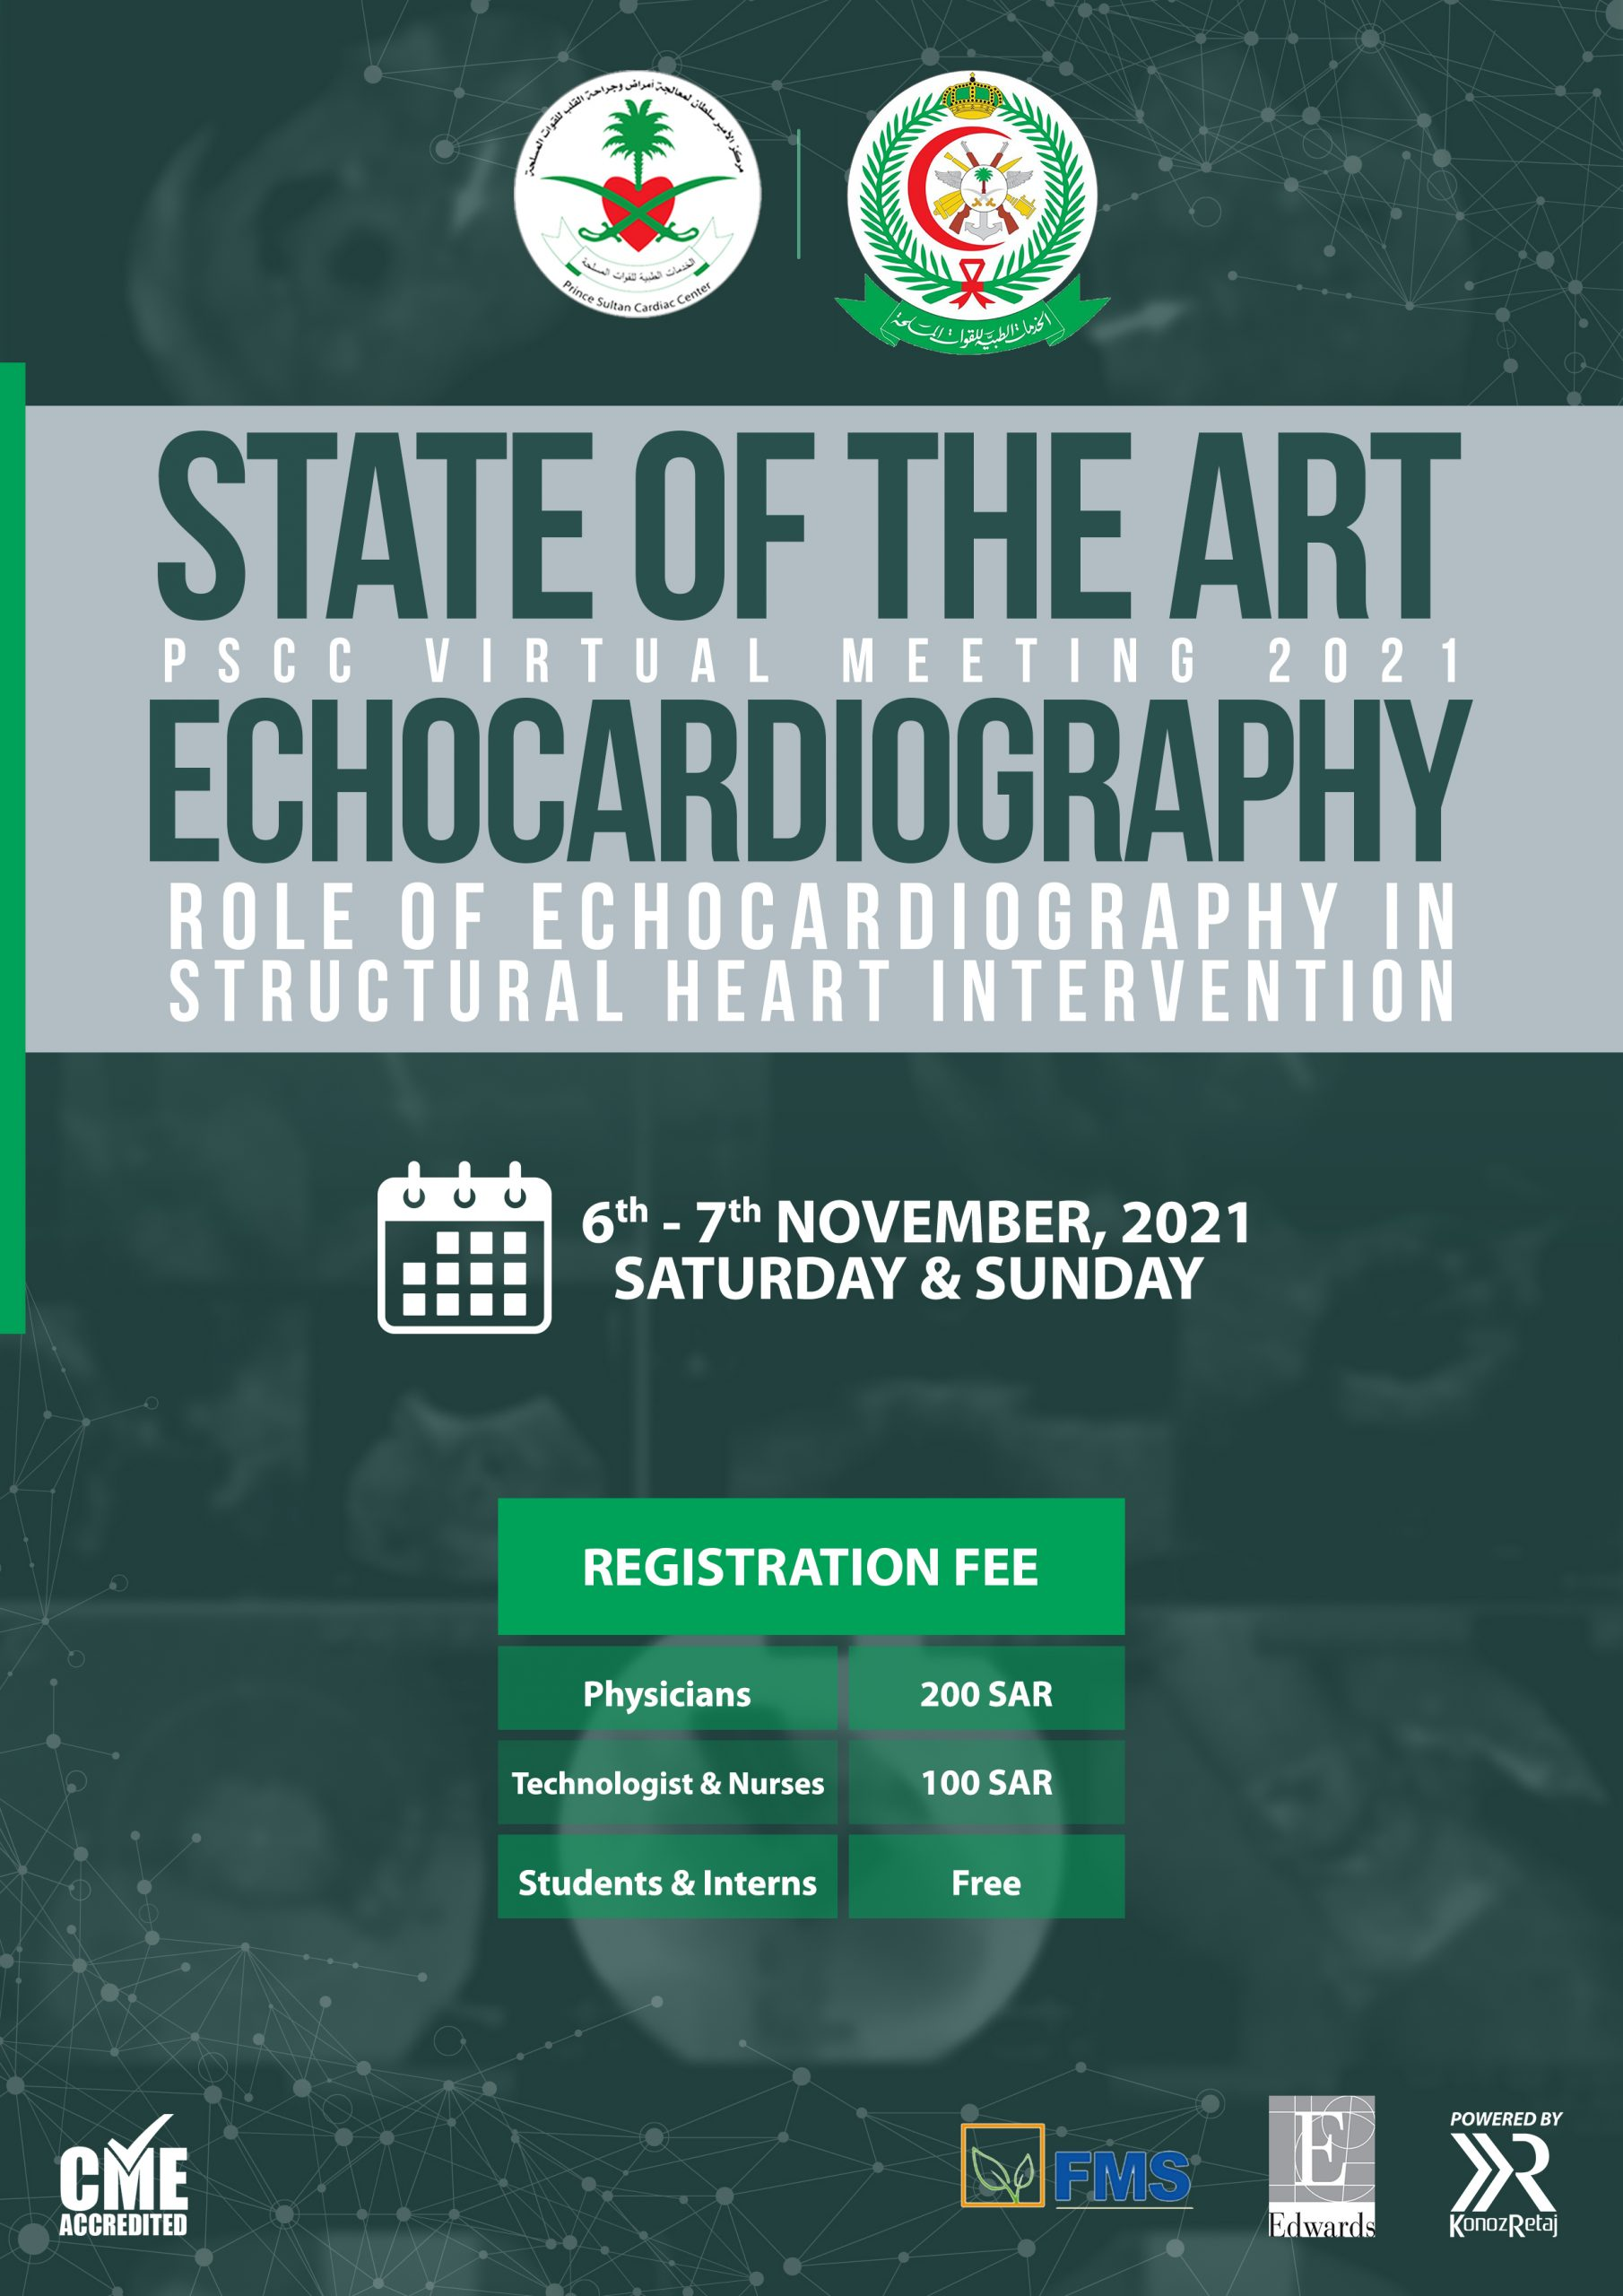 STATE OF THE ART ECHOCARDIOGRAPHY